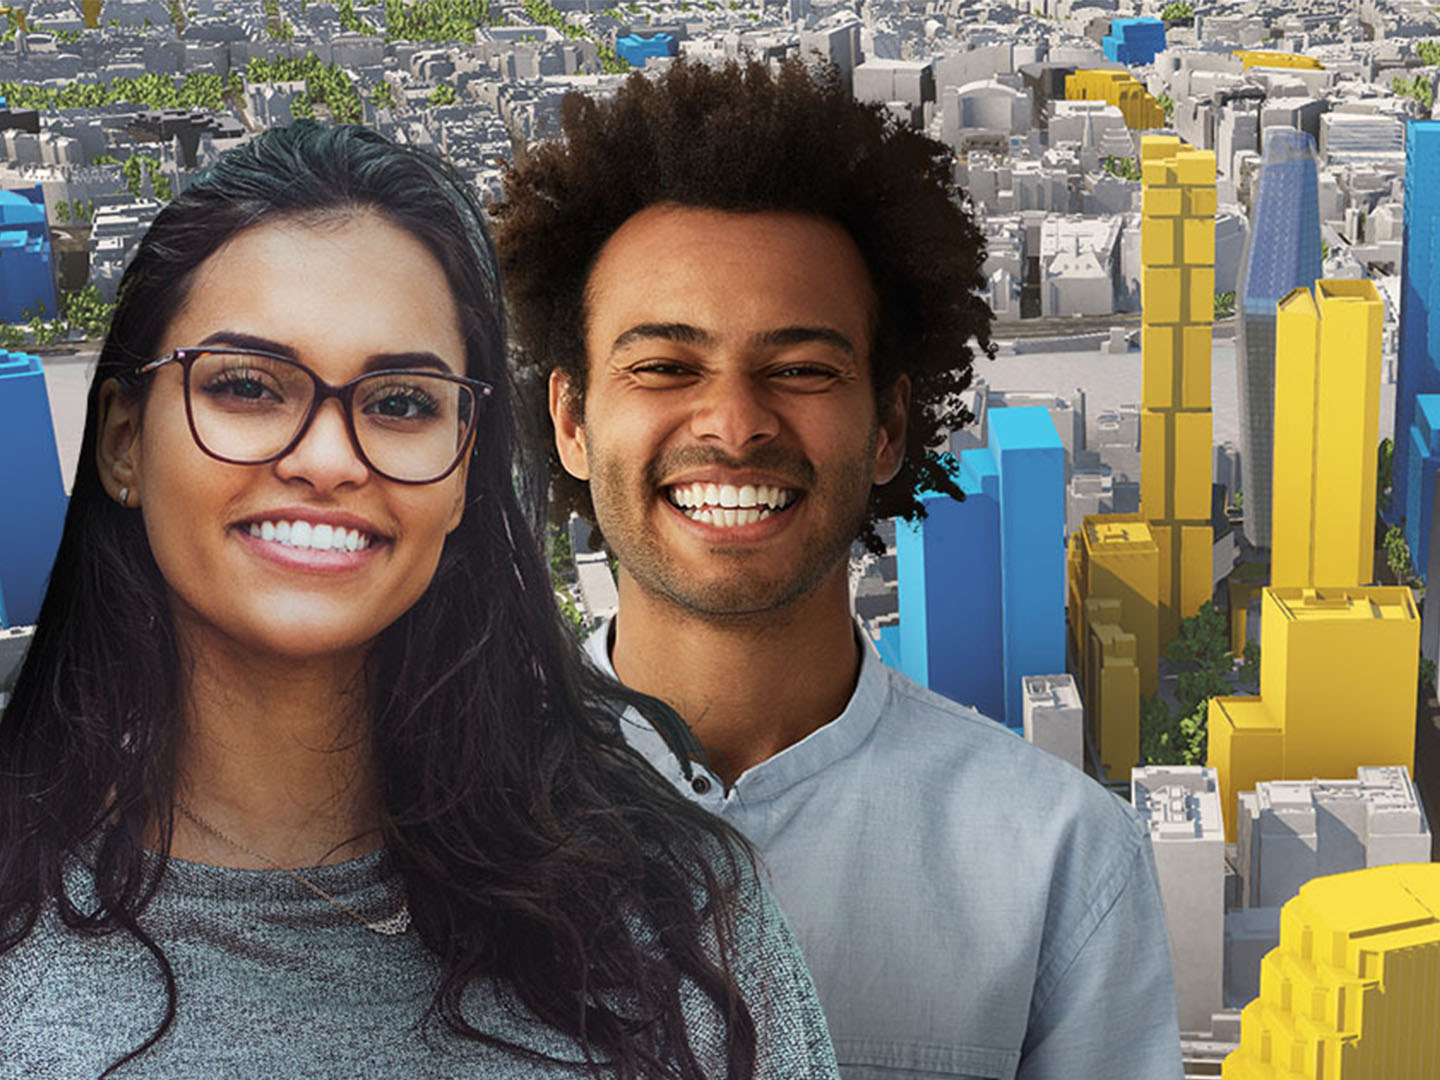 VU.CITY's new student licences will equip future planners with the skills they need to thrive